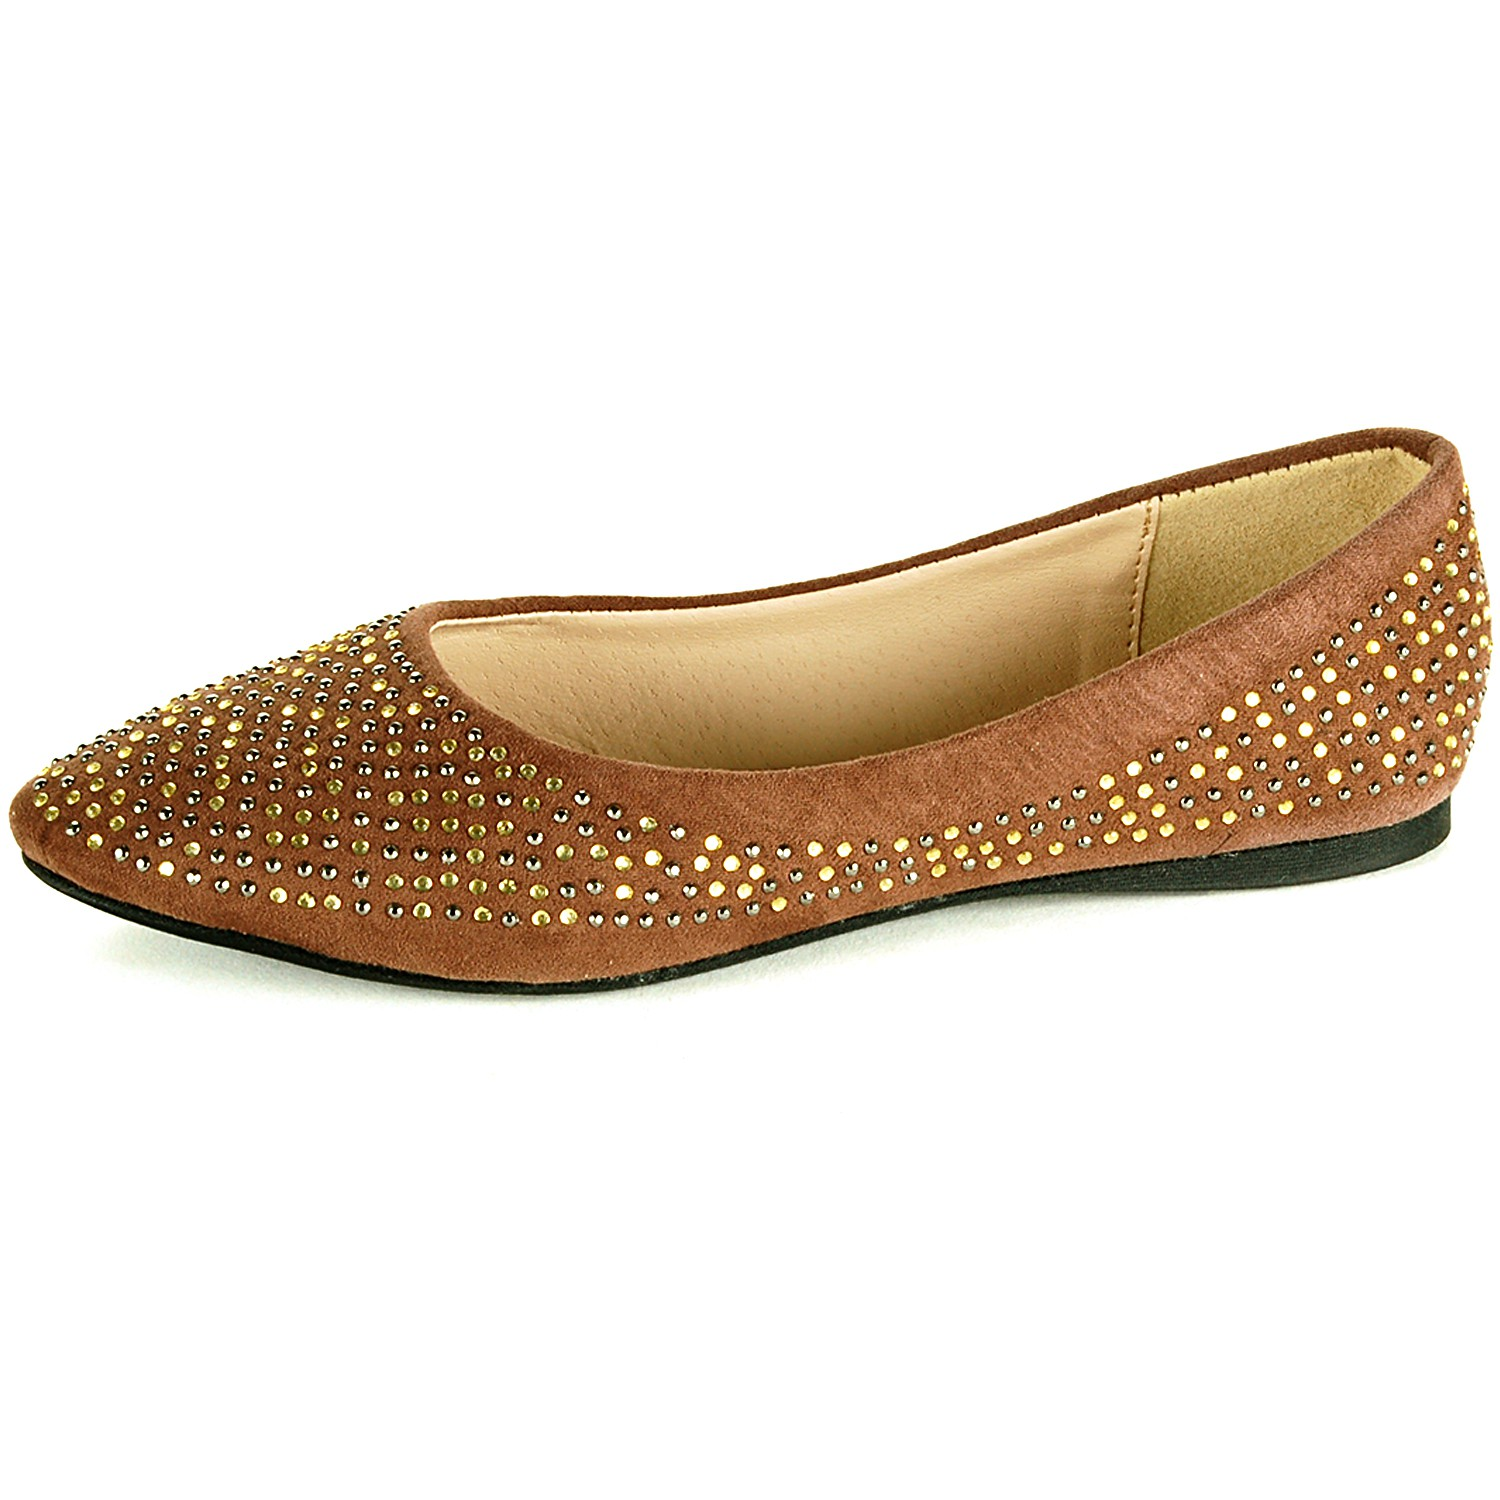 Womens Ballet Flats Slip On Rhinestone Shoe Faux Suede